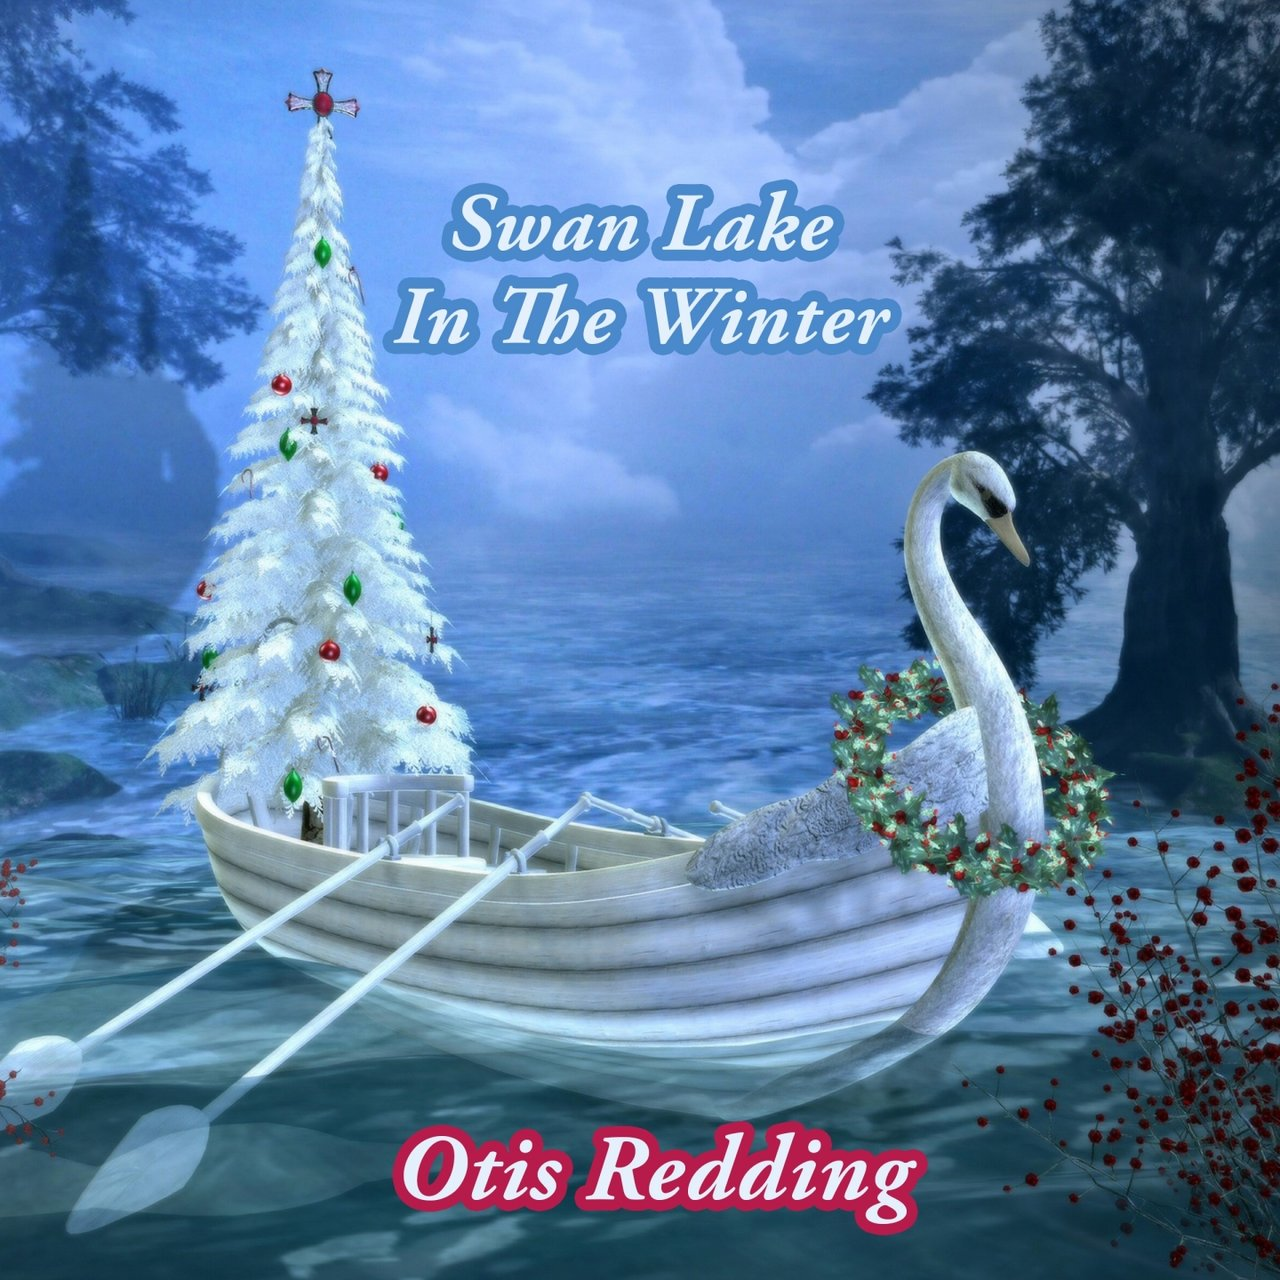 albums - Otis Redding Christmas